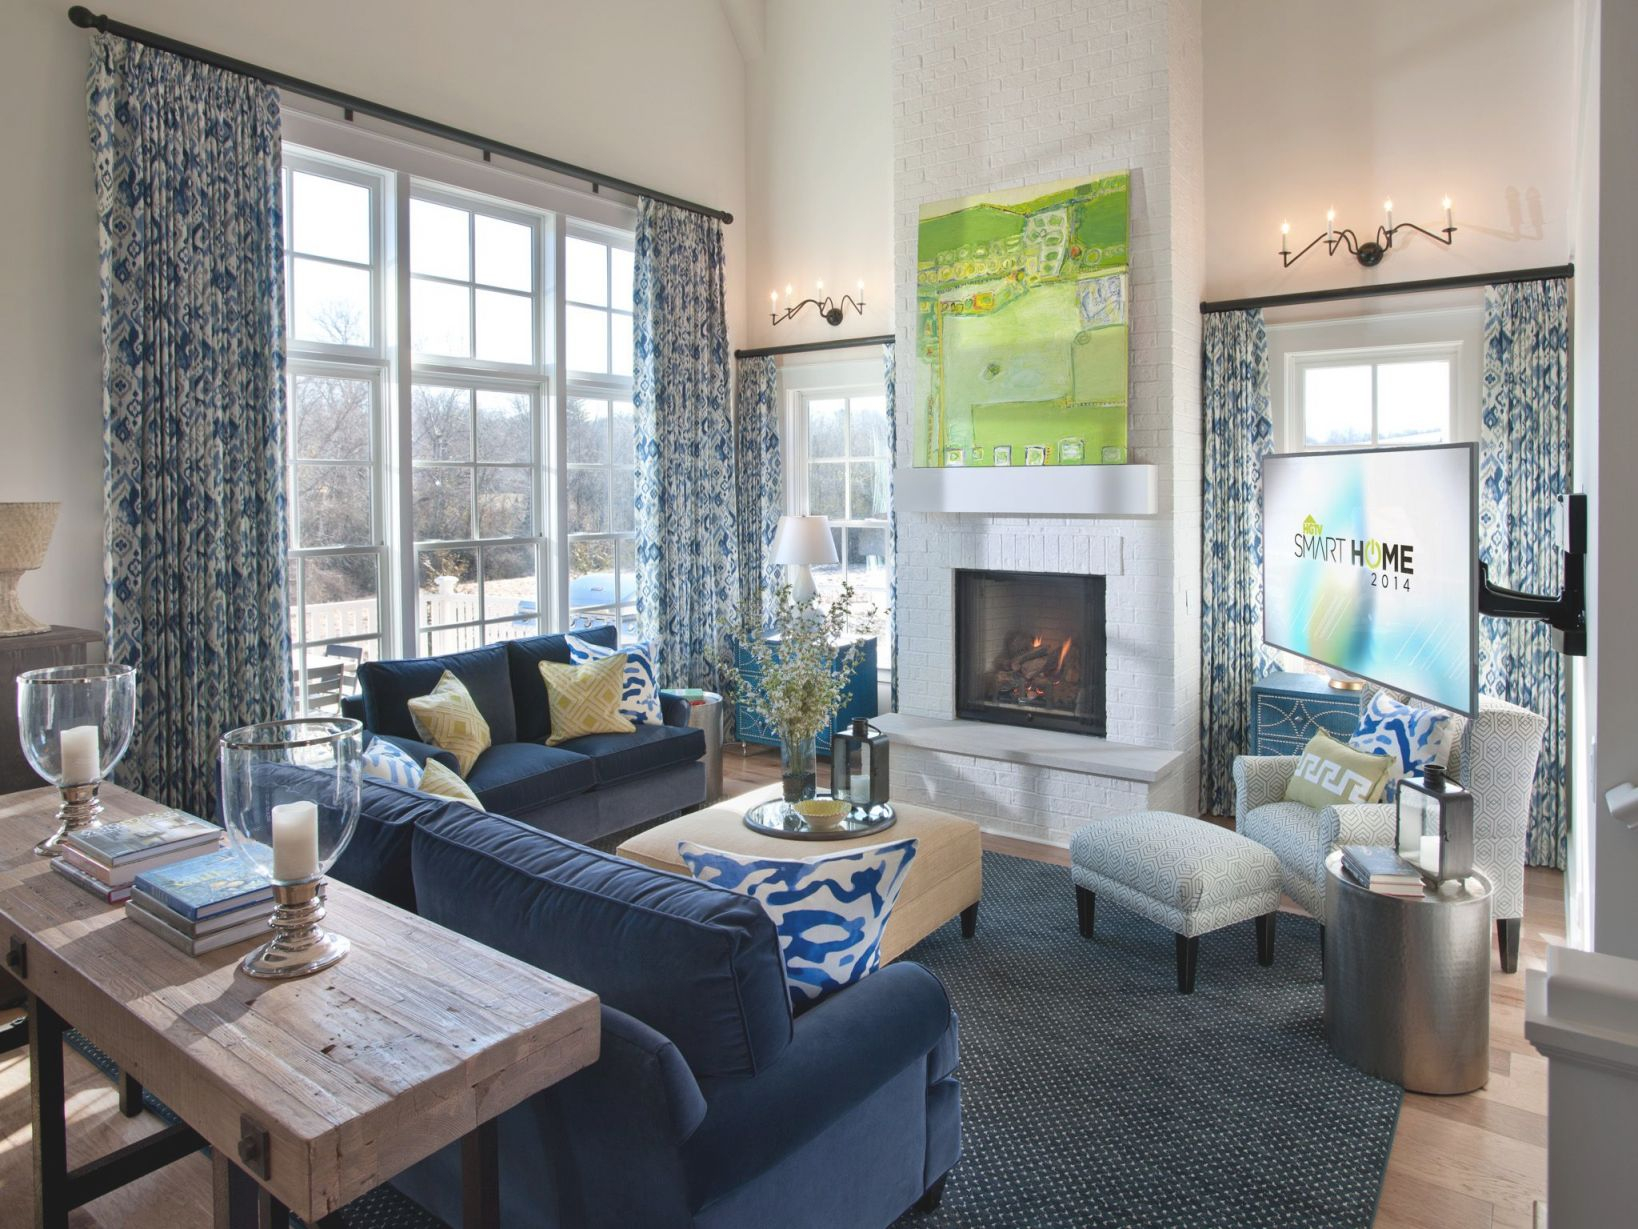 Luxury Living Room Home Decor Ideas Feature Navy Blue within Living Room Decorating Ideas 2014